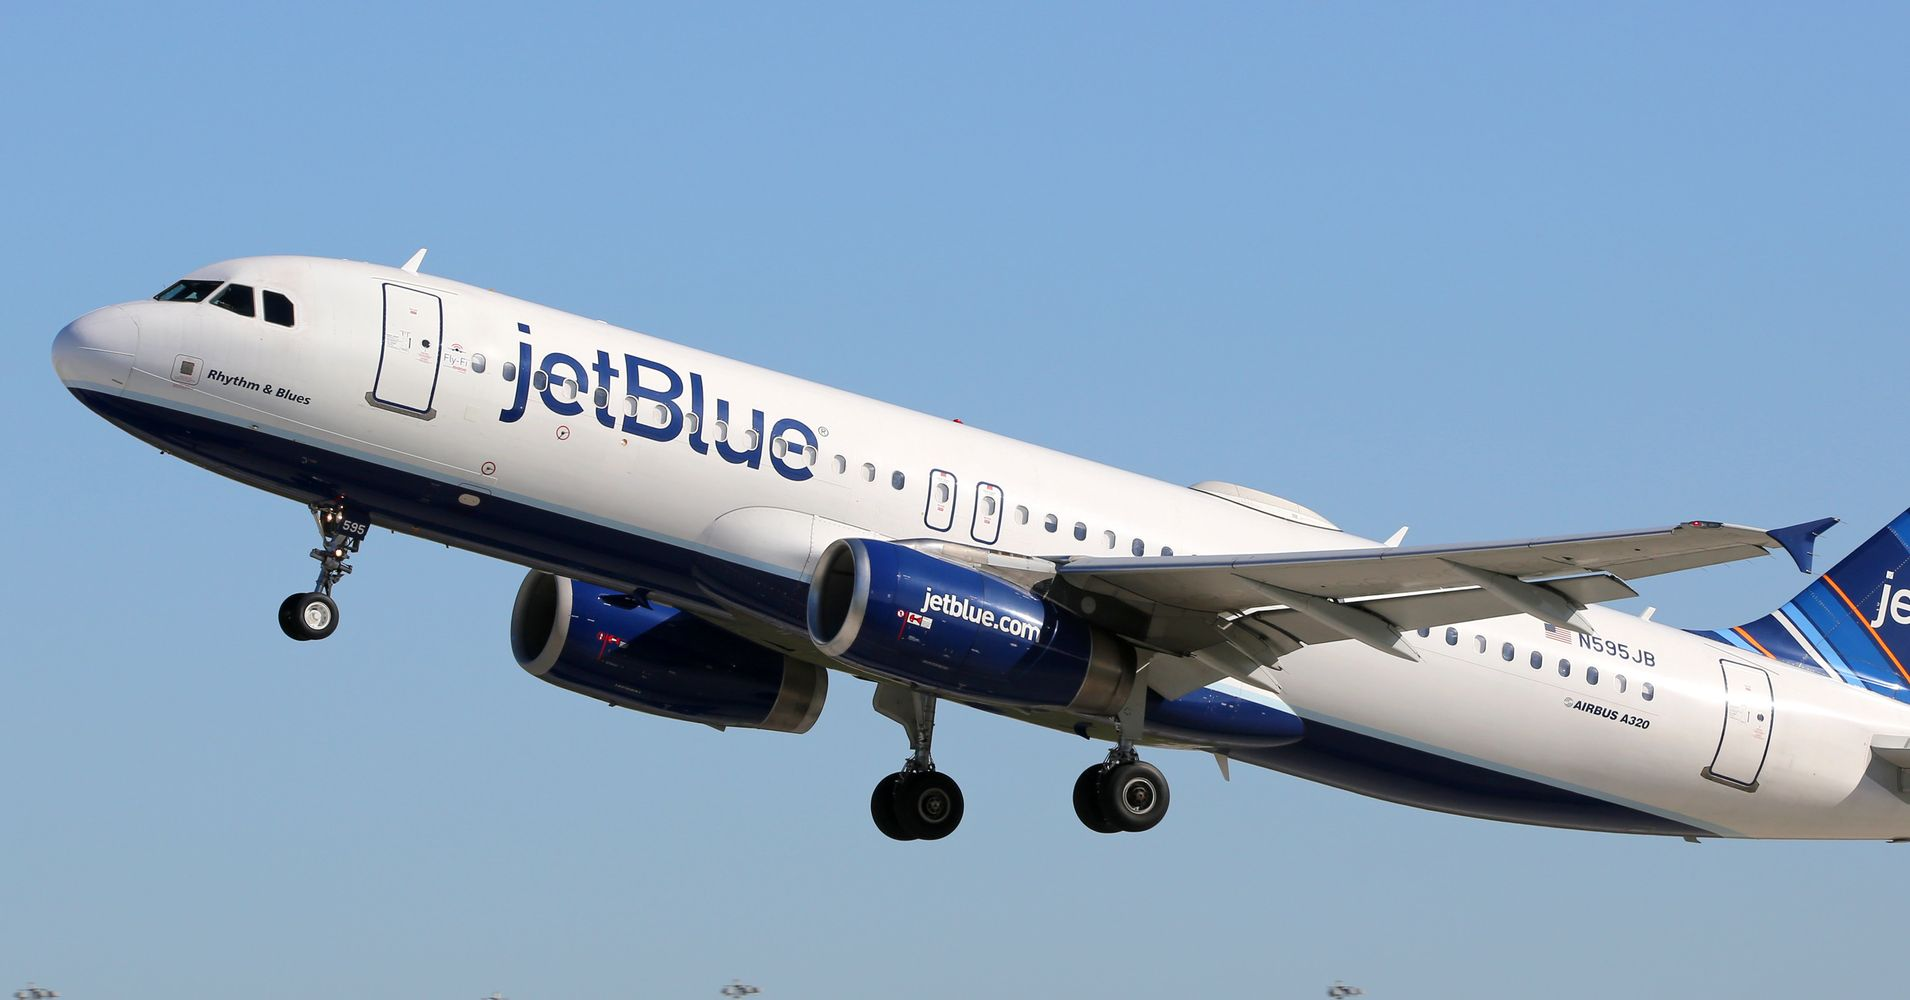 jetblue is offering 49 flights in an awesome 2 day flash sale